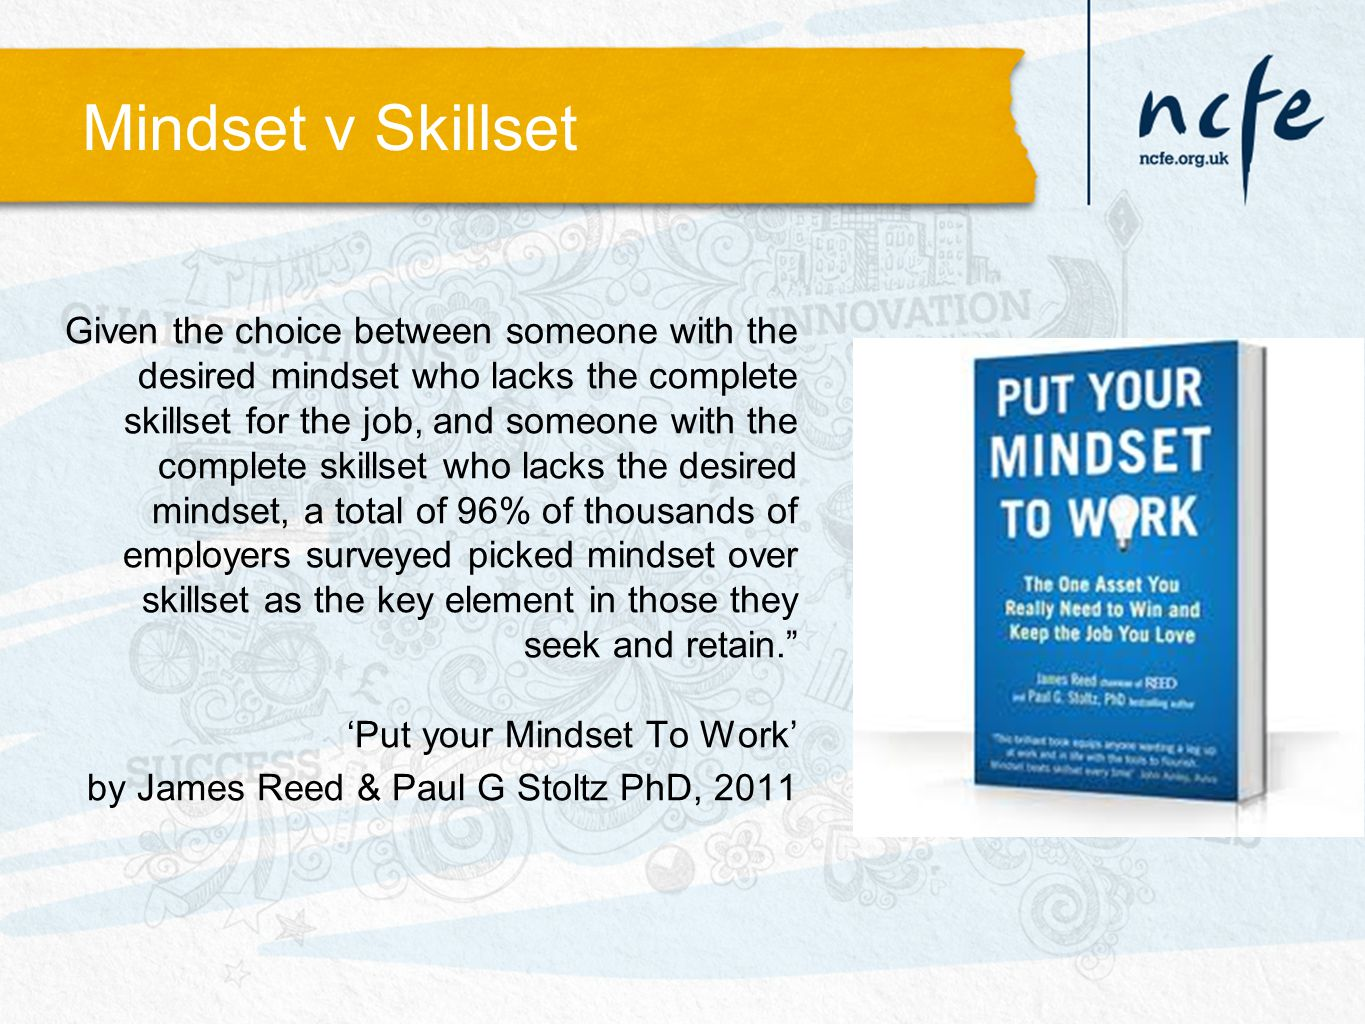 Mindset v Skillset Given the choice between someone with the desired mindset who lacks the complete skillset for the job, and someone with the complete skillset who lacks the desired mindset, a total of 96% of thousands of employers surveyed picked mindset over skillset as the key element in those they seek and retain. 'Put your Mindset To Work' by James Reed & Paul G Stoltz PhD, 2011